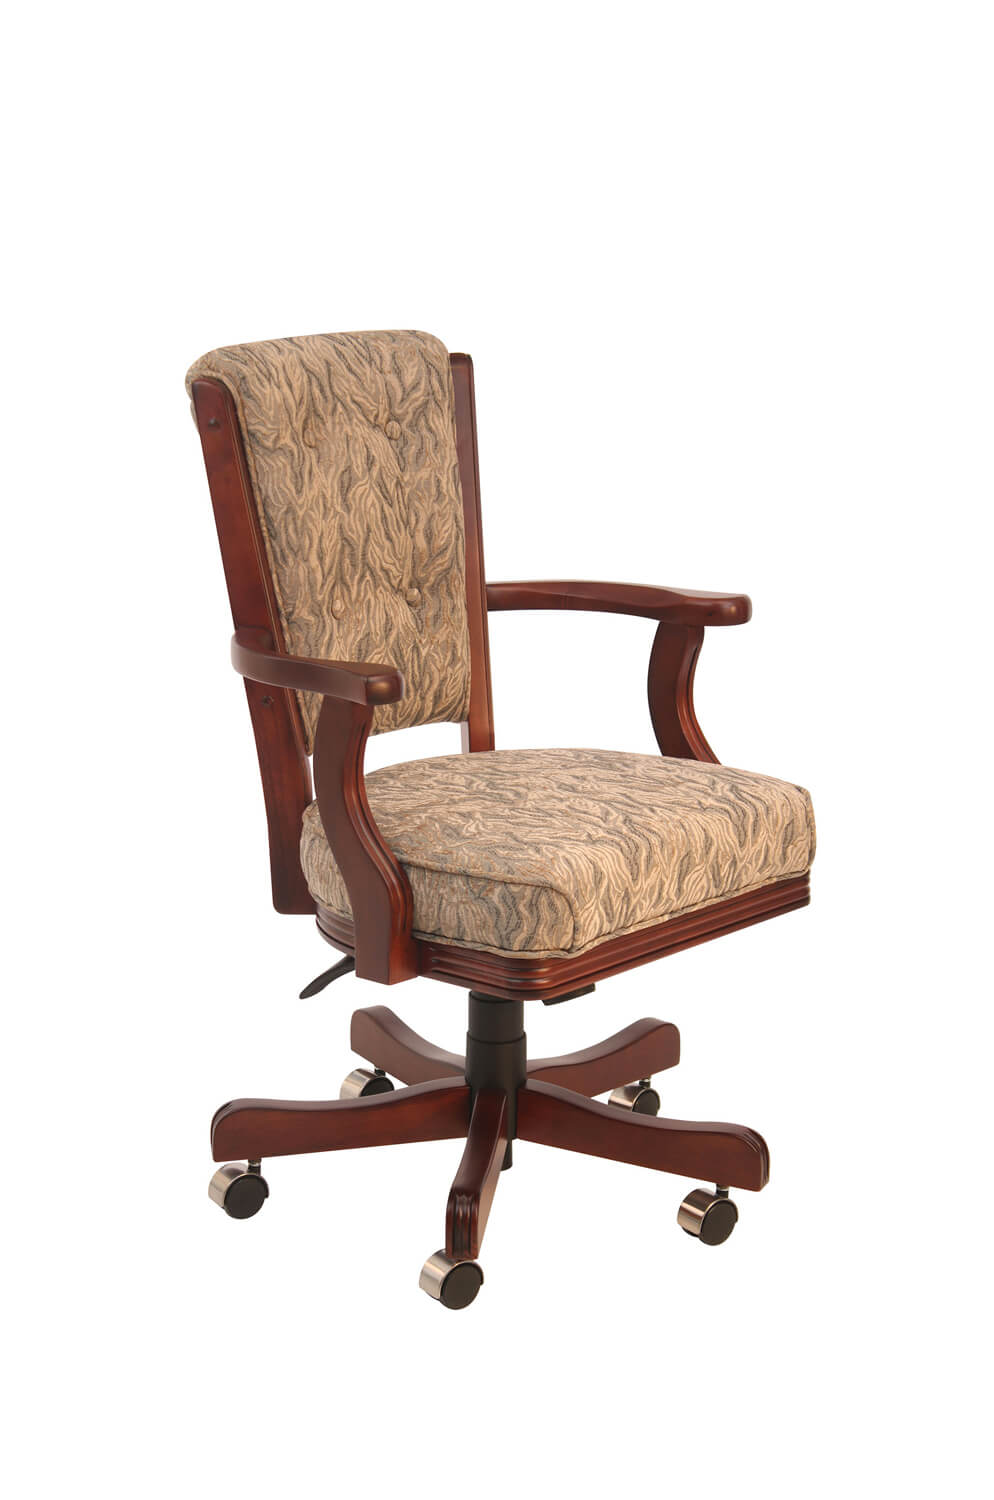 960 Maple Wood Upholstered High Back Game Arm Chair with Casters, Adjustable Height